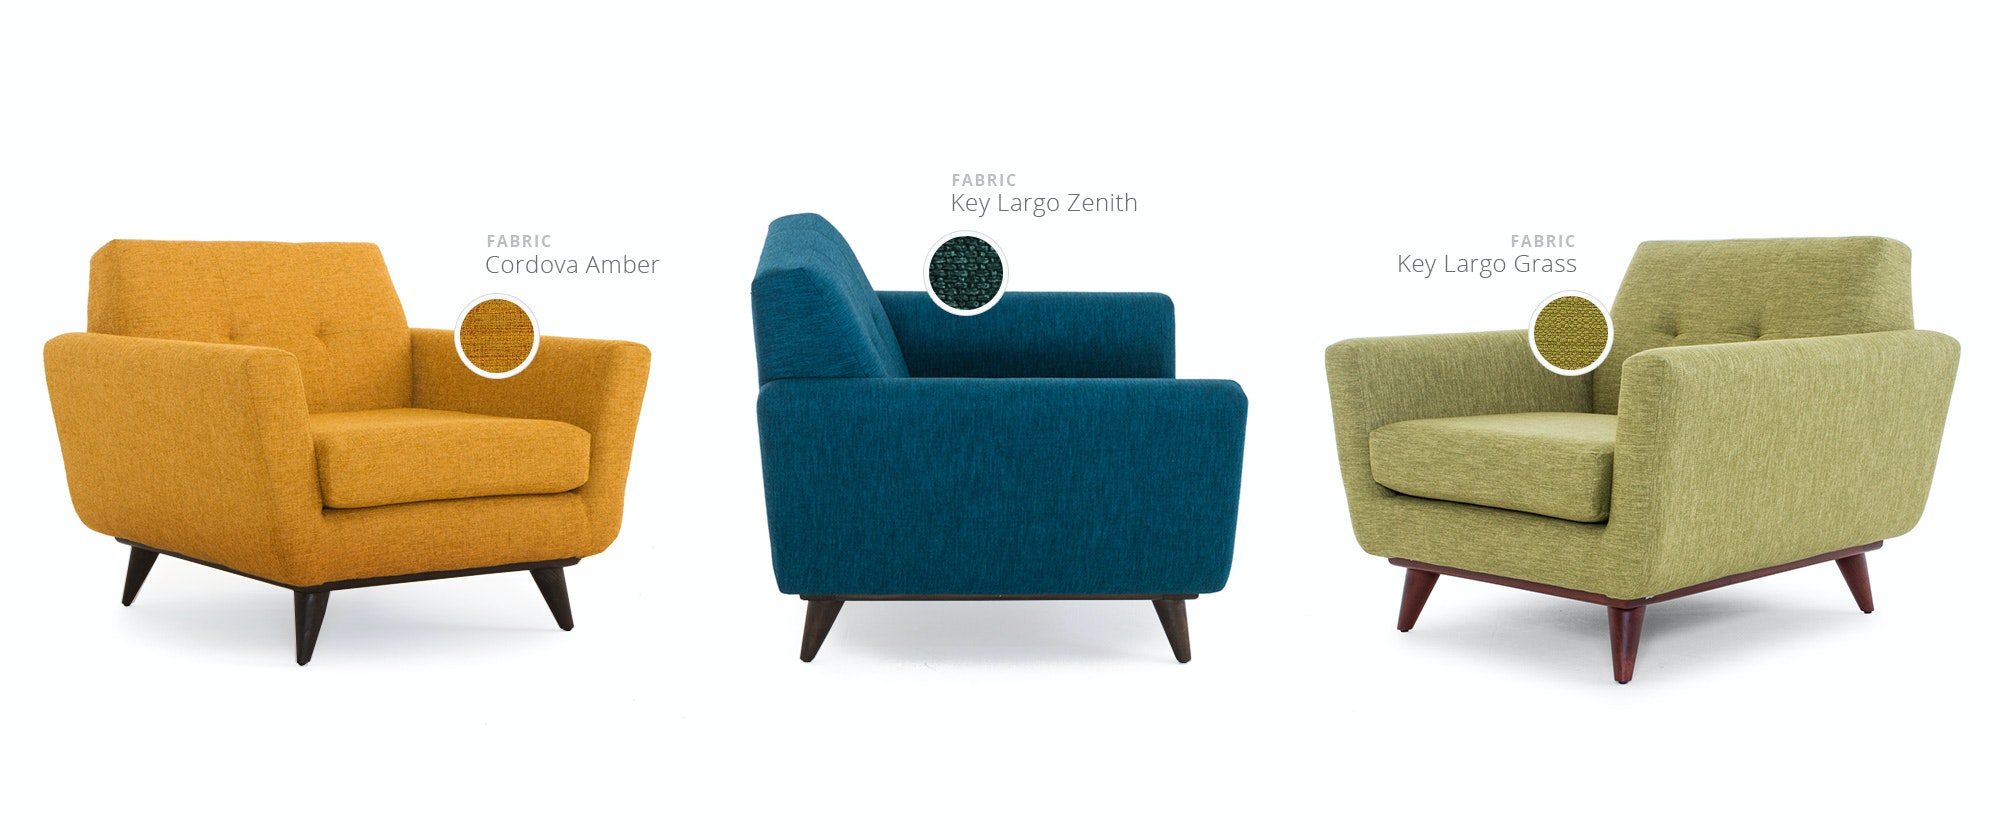 fabric reading chair amazing reading chair and ottoman design your furniture online Shop by Color